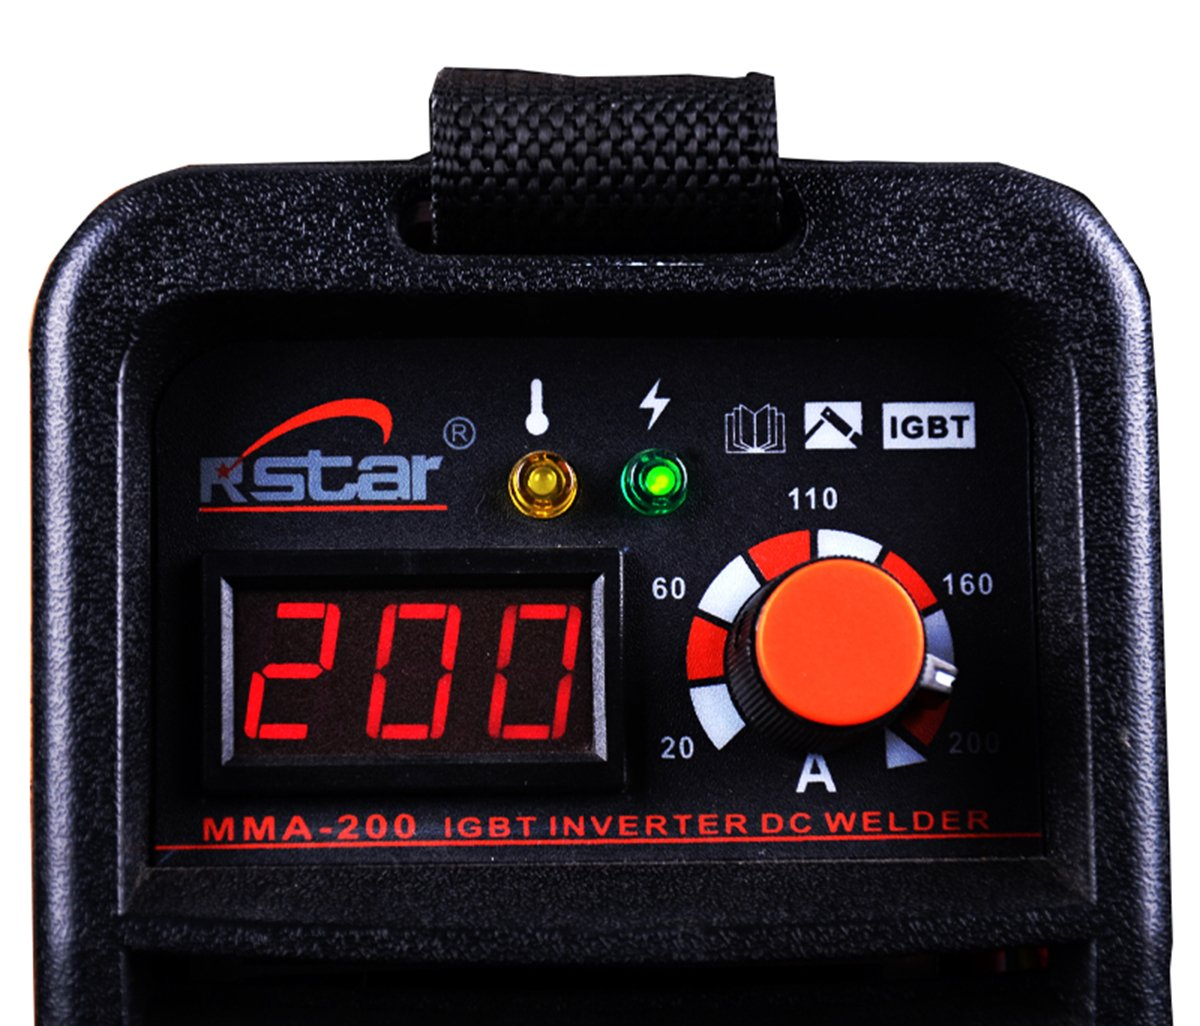 Rstar Portable IGBT Inverter 110v/220v Dual voltage mma200 stick welding machine - - Amazon.com